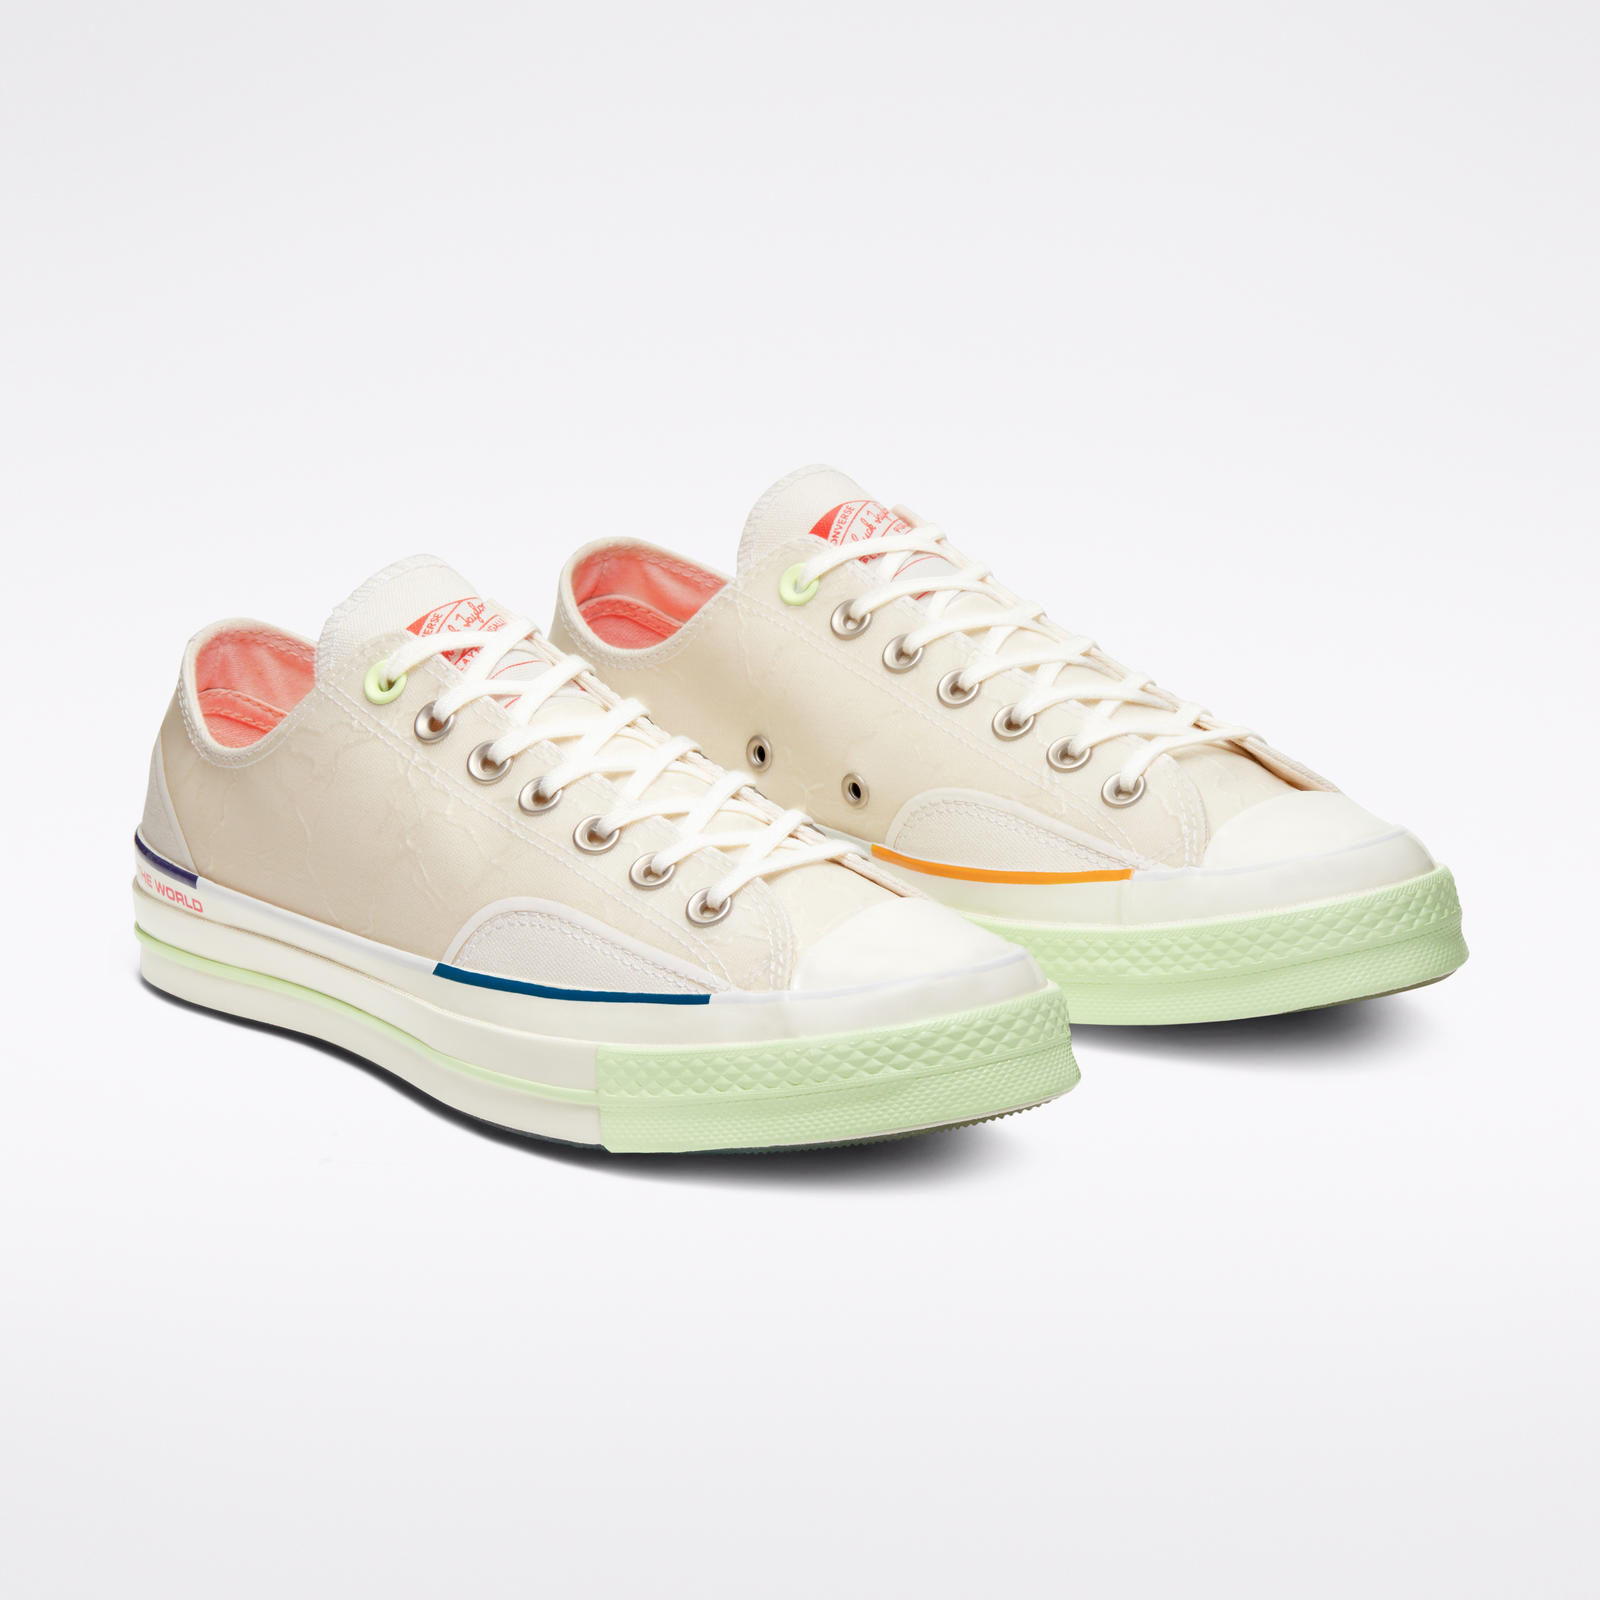 Nike Converse Pigalle 2019 Collection 6